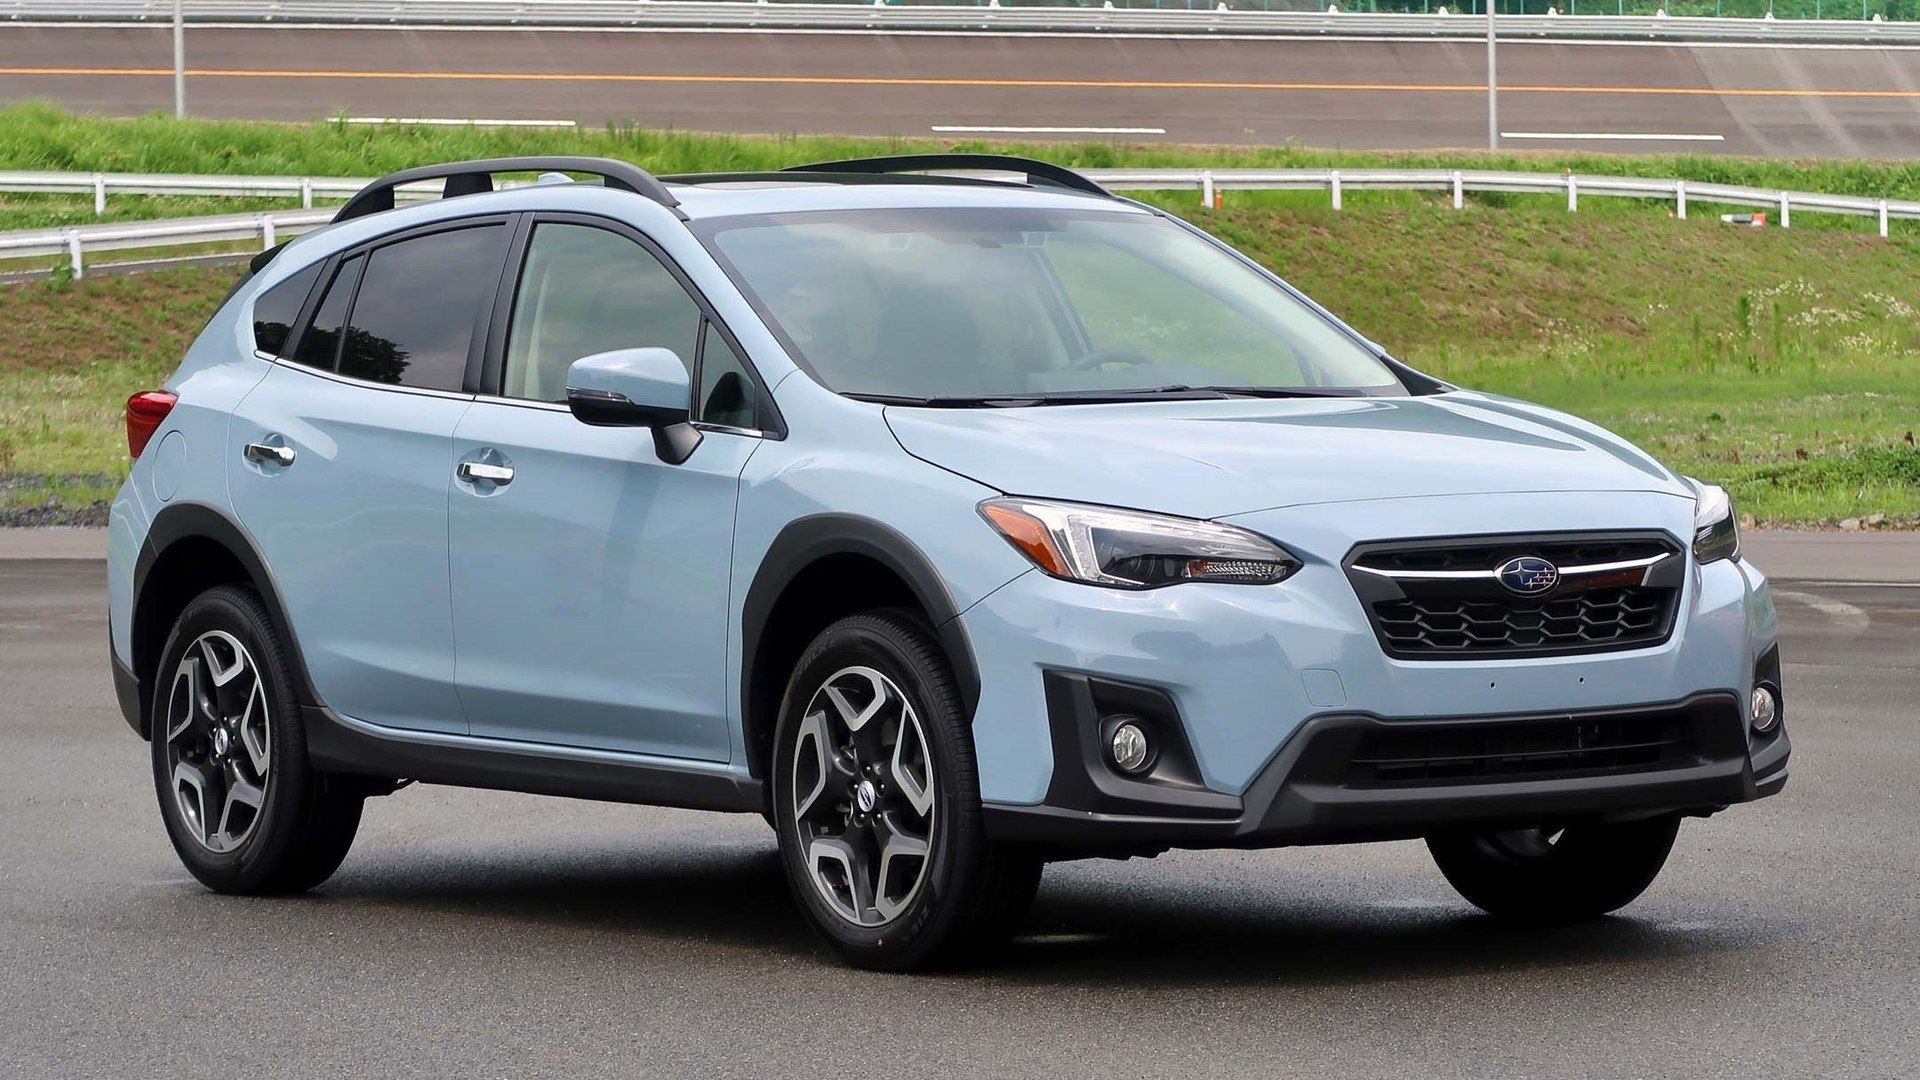 What Will The 2020 Subaru Crosstrek Be Released